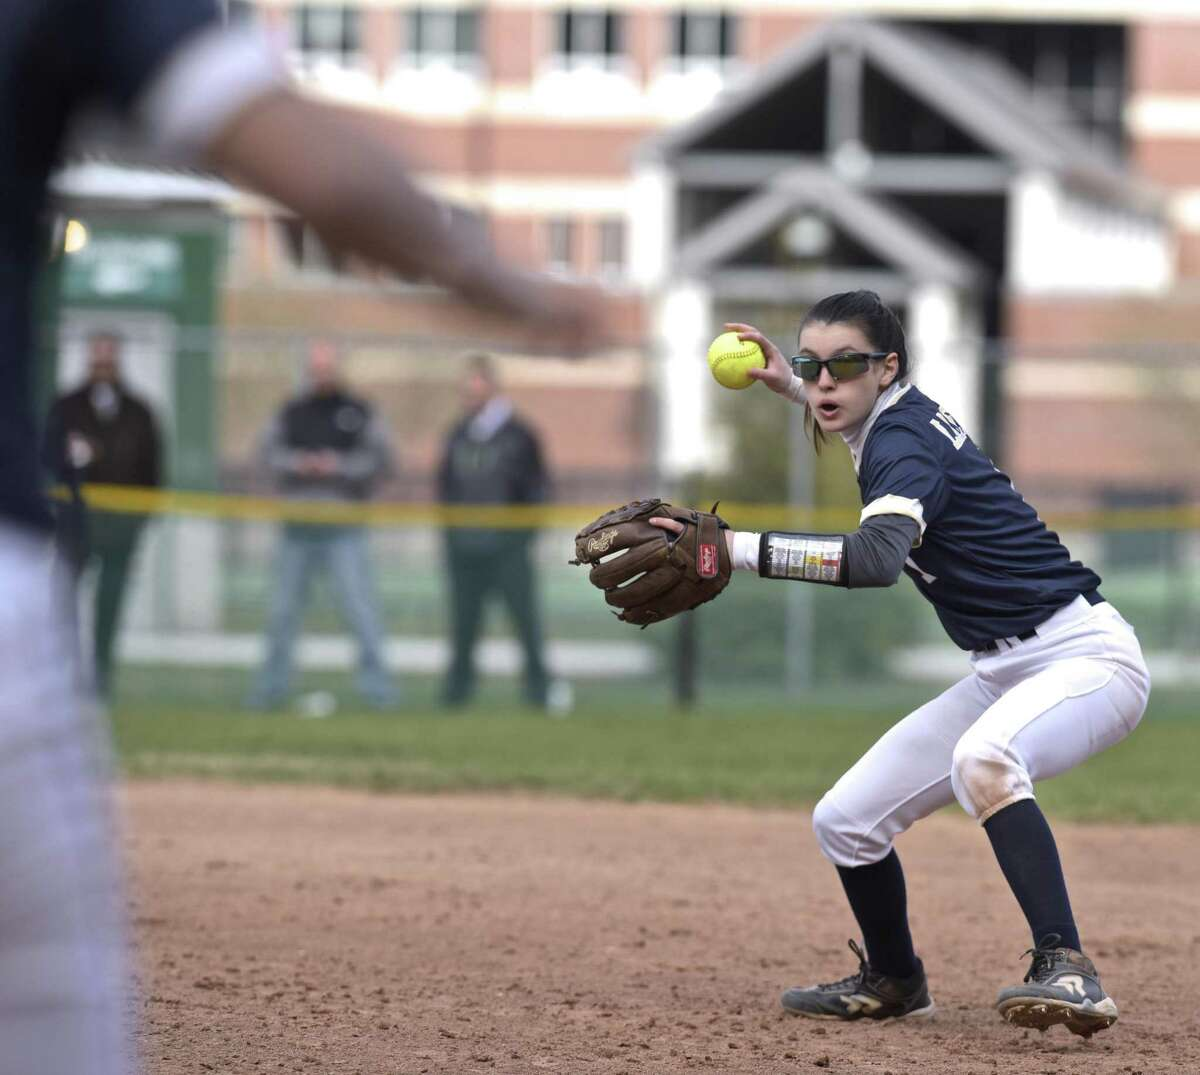 Notre Dame's Jillian Howe (1) gets set to throw to first for the out in the girls softball game between Notre Dame - Fairfield and New Milford high schools, Wednesday afternoon, April 18, 2018, at New Milford High School, New Milford, Conn.